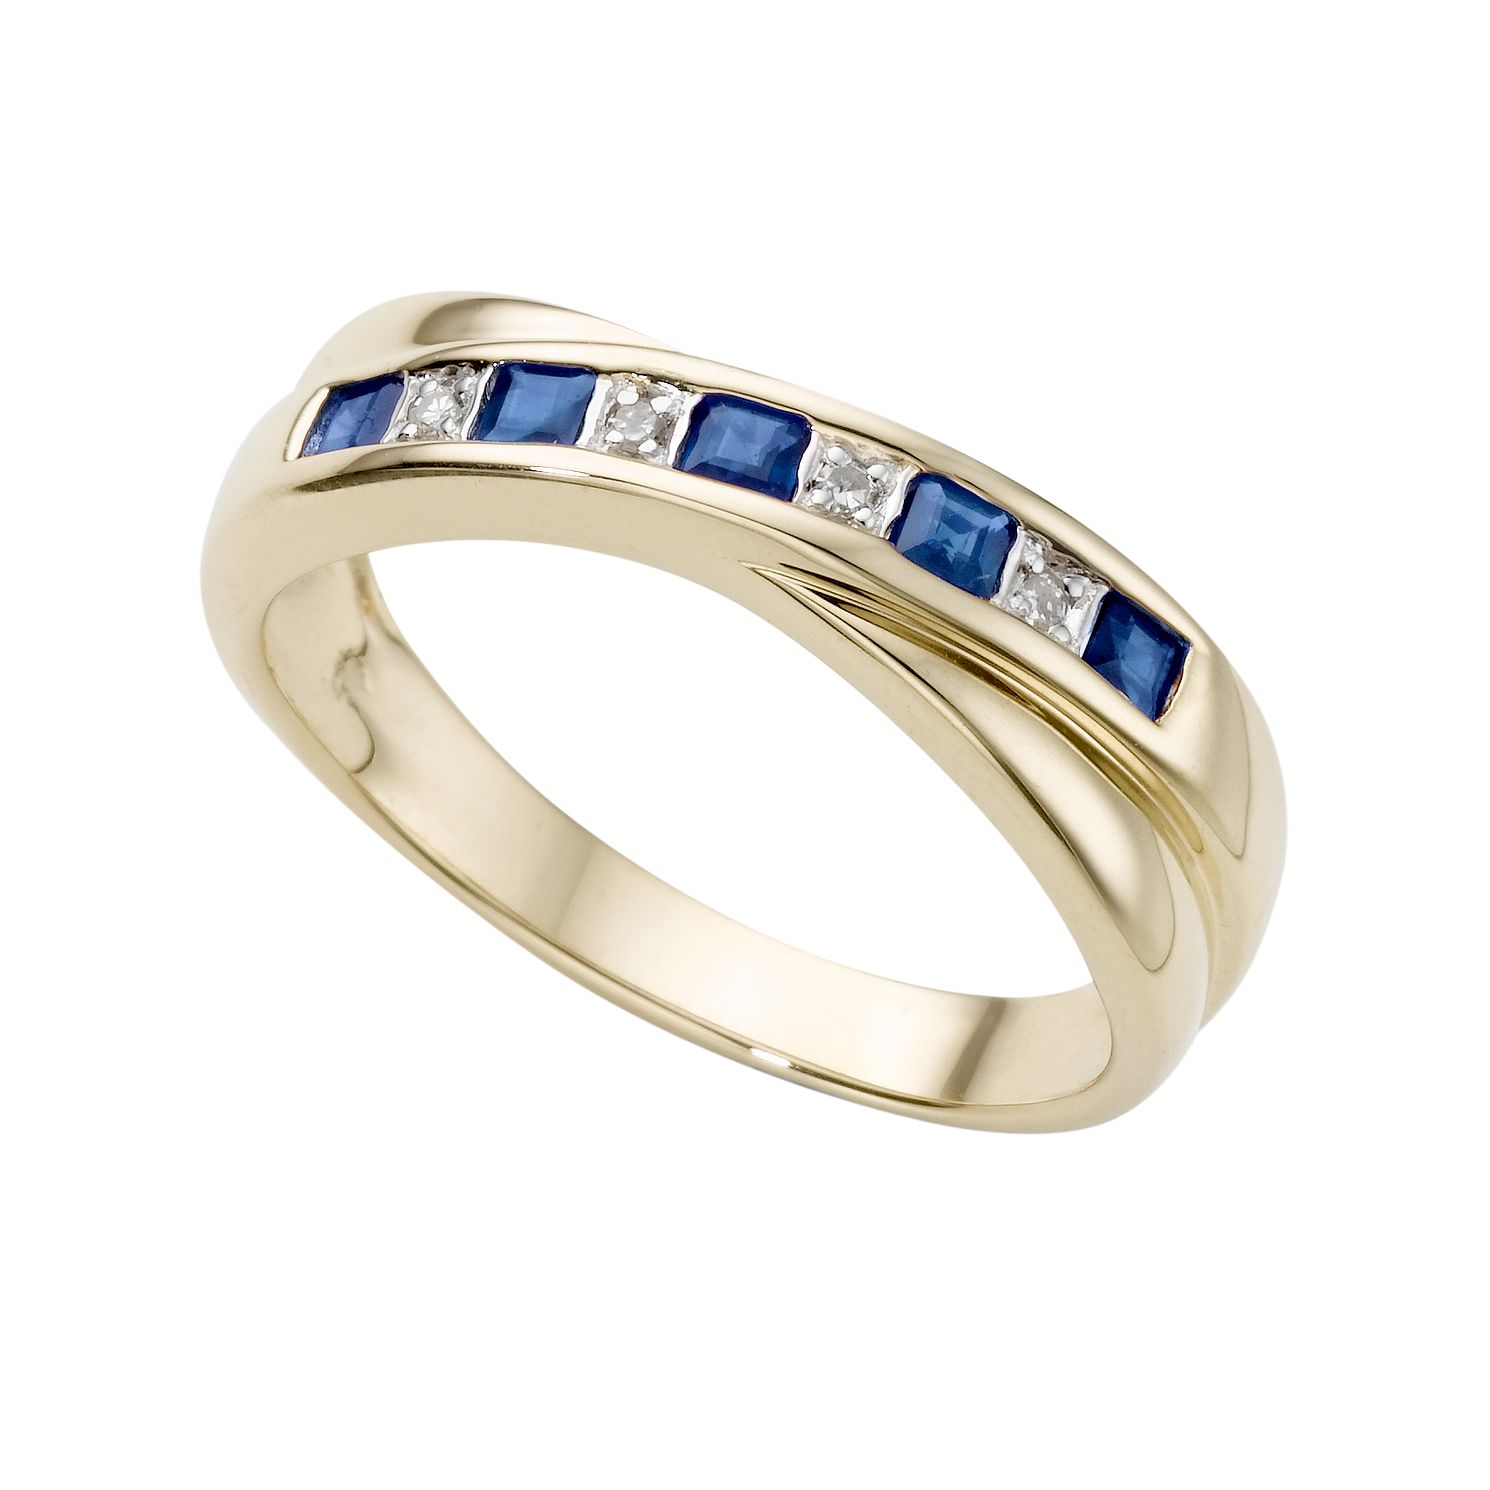 pin centre side blue sold with either asprey stone rings oval cut diamonds royal